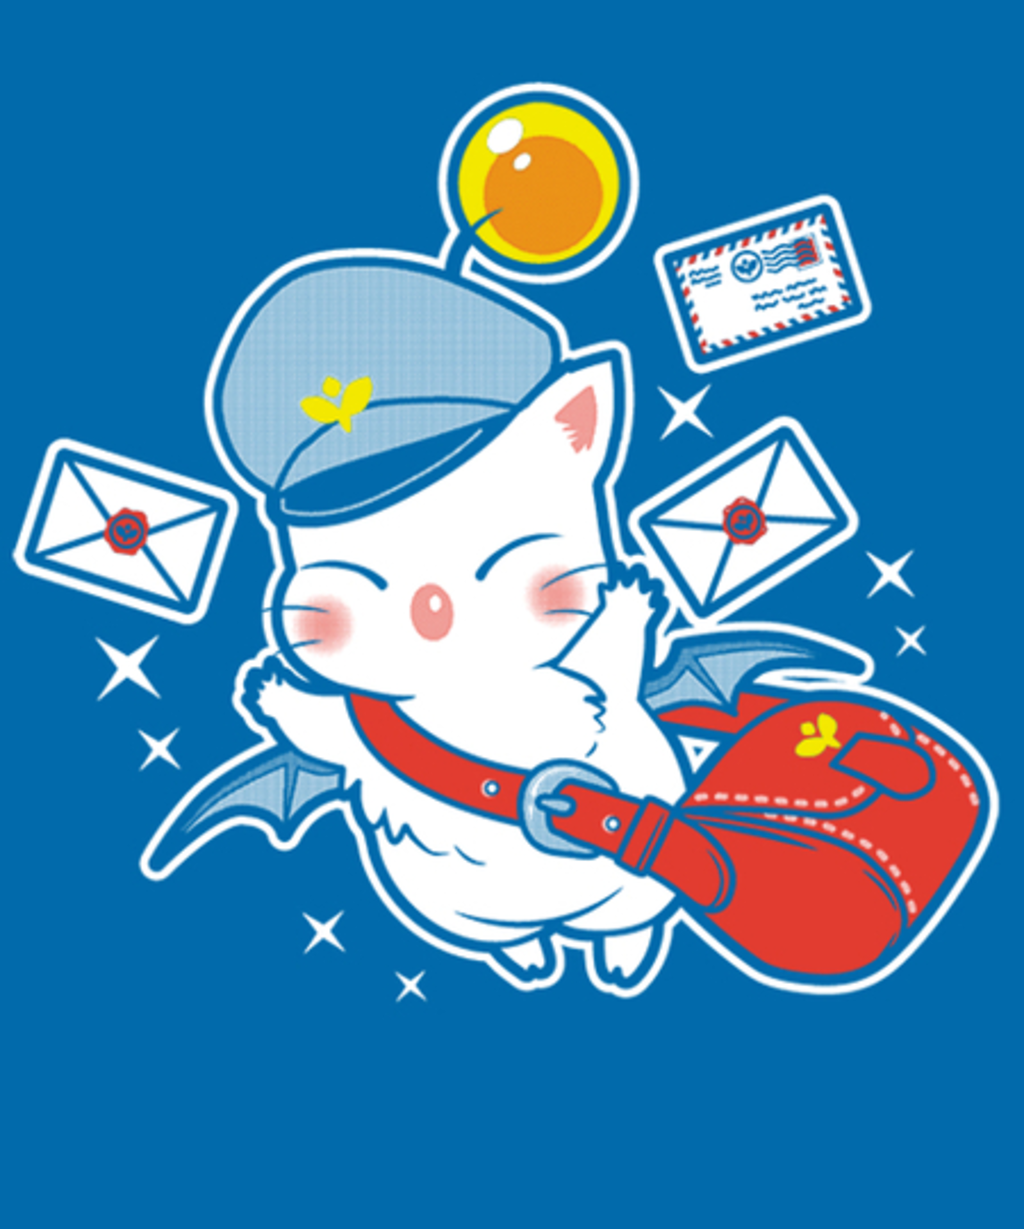 Qwertee: You've got mail, kupo!